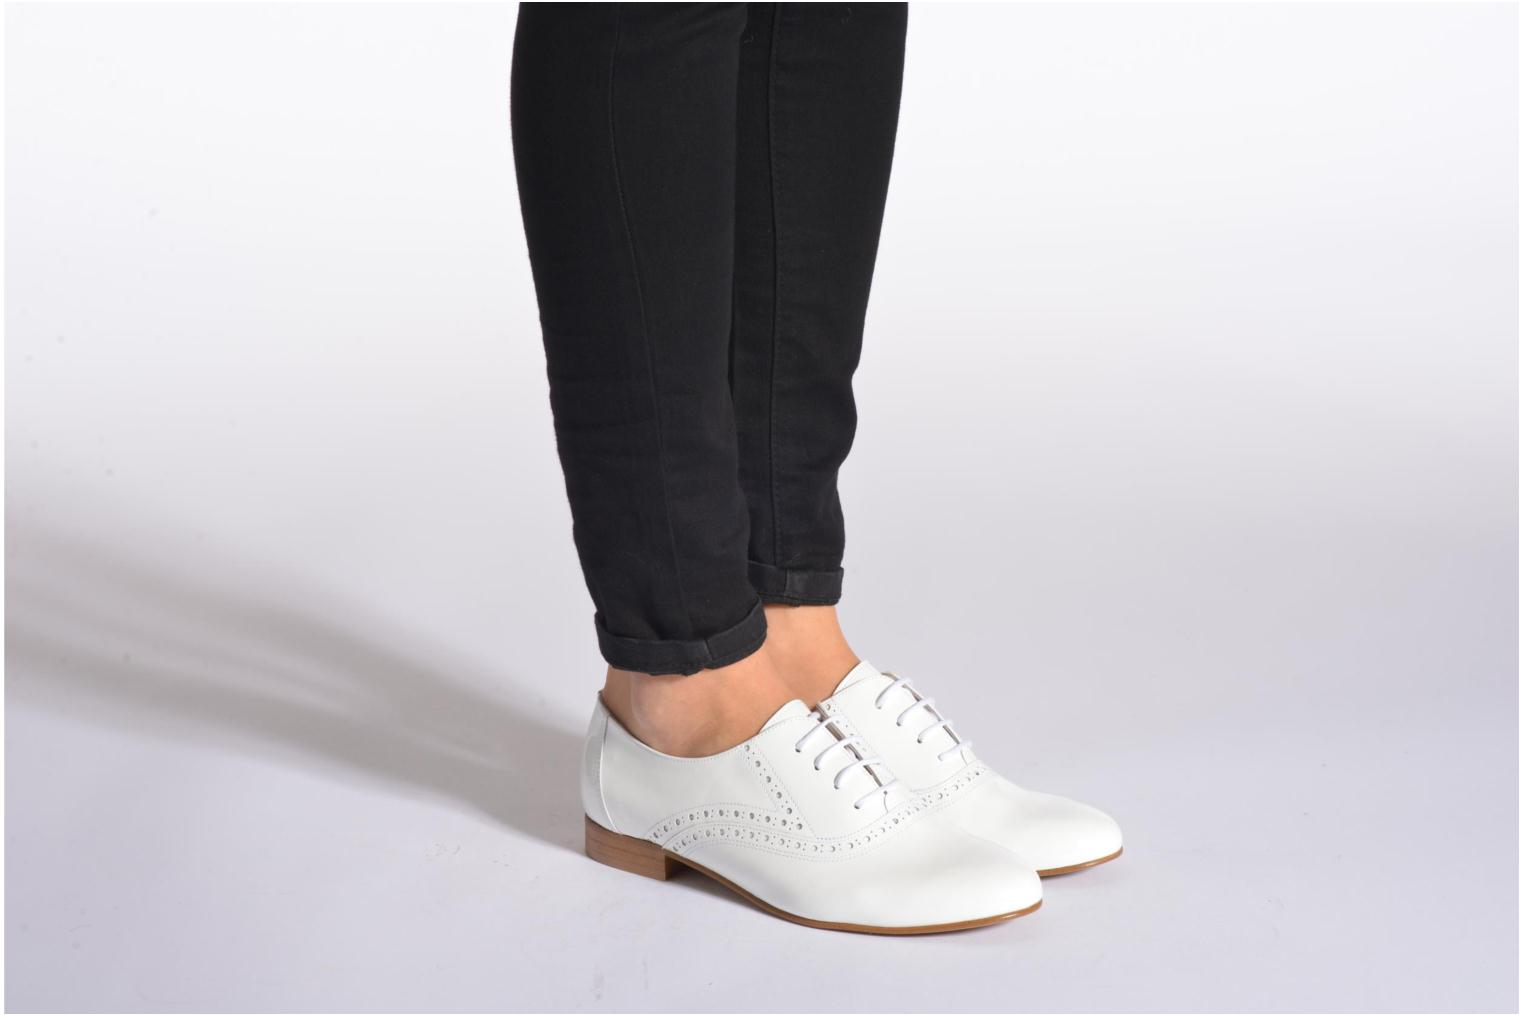 Lace-up shoes Minelli F61 430/VER White view from underneath / model view